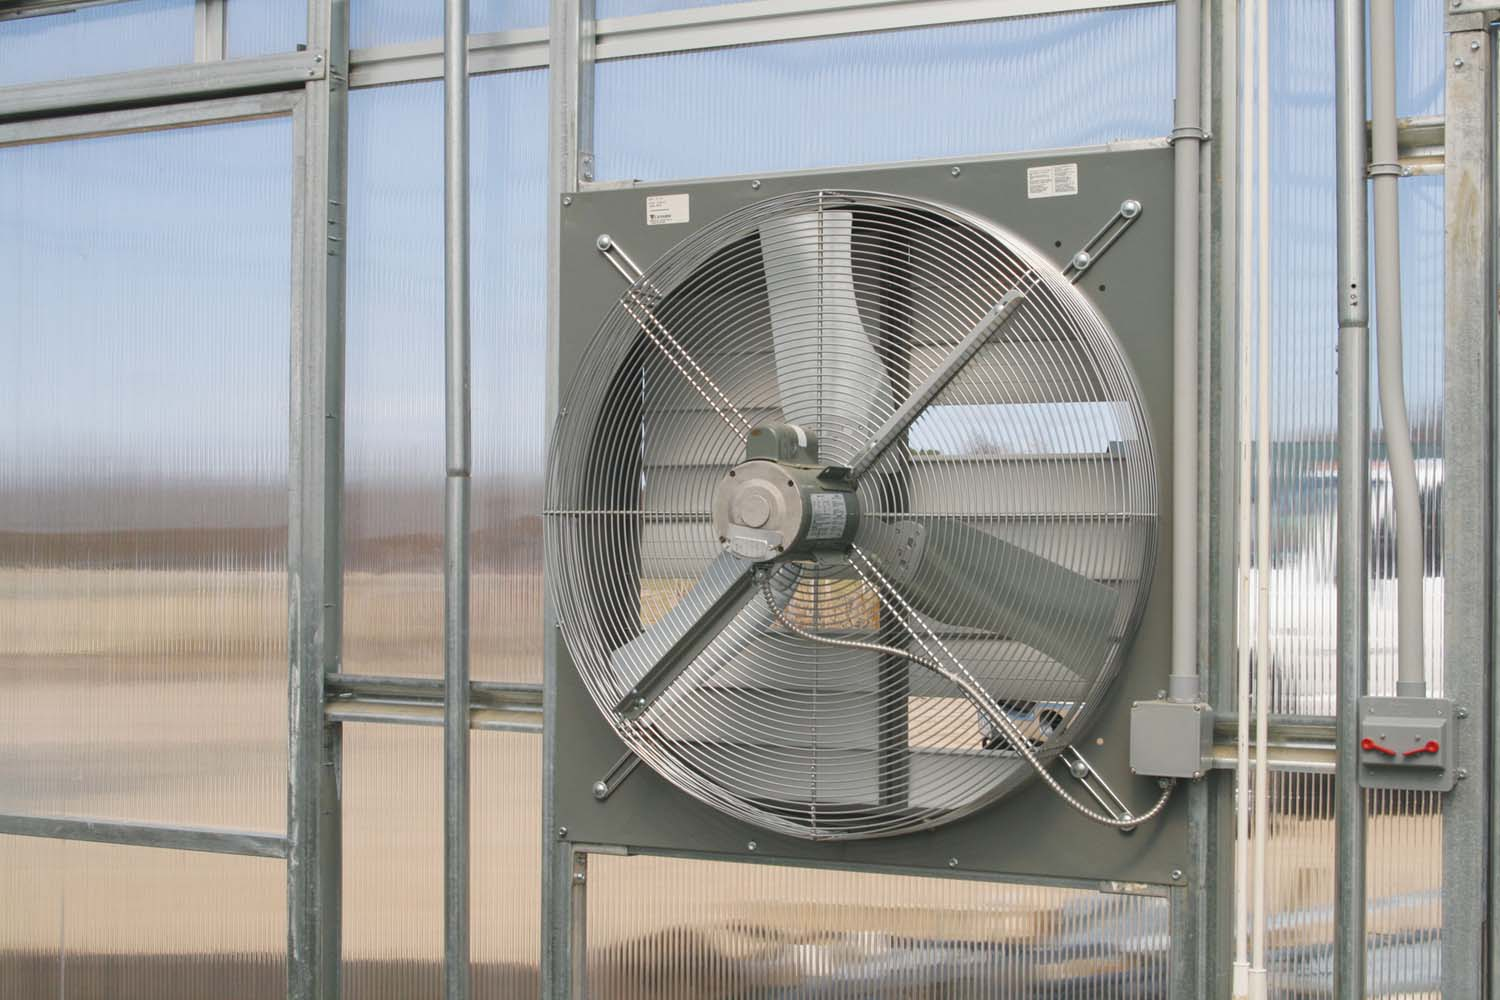 Greenhouse Shutter Fans : Greenhouse exhaust fans bing images